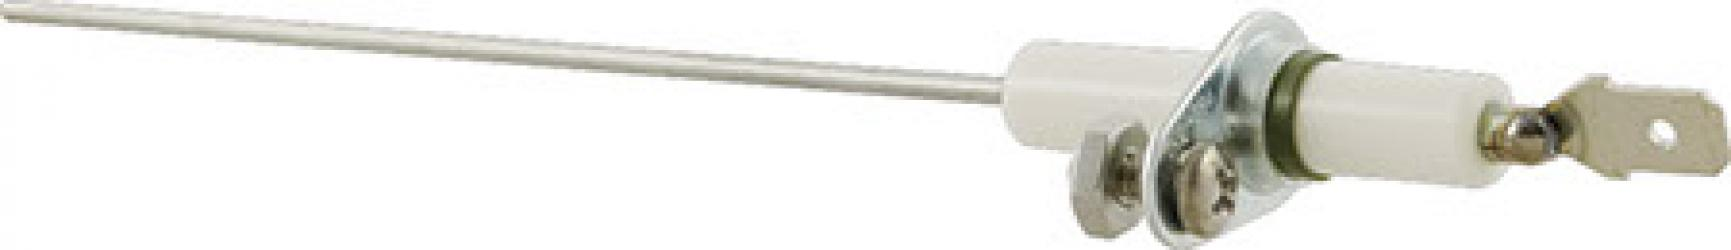 Blichmann Tower of Power - Ignition Electrode